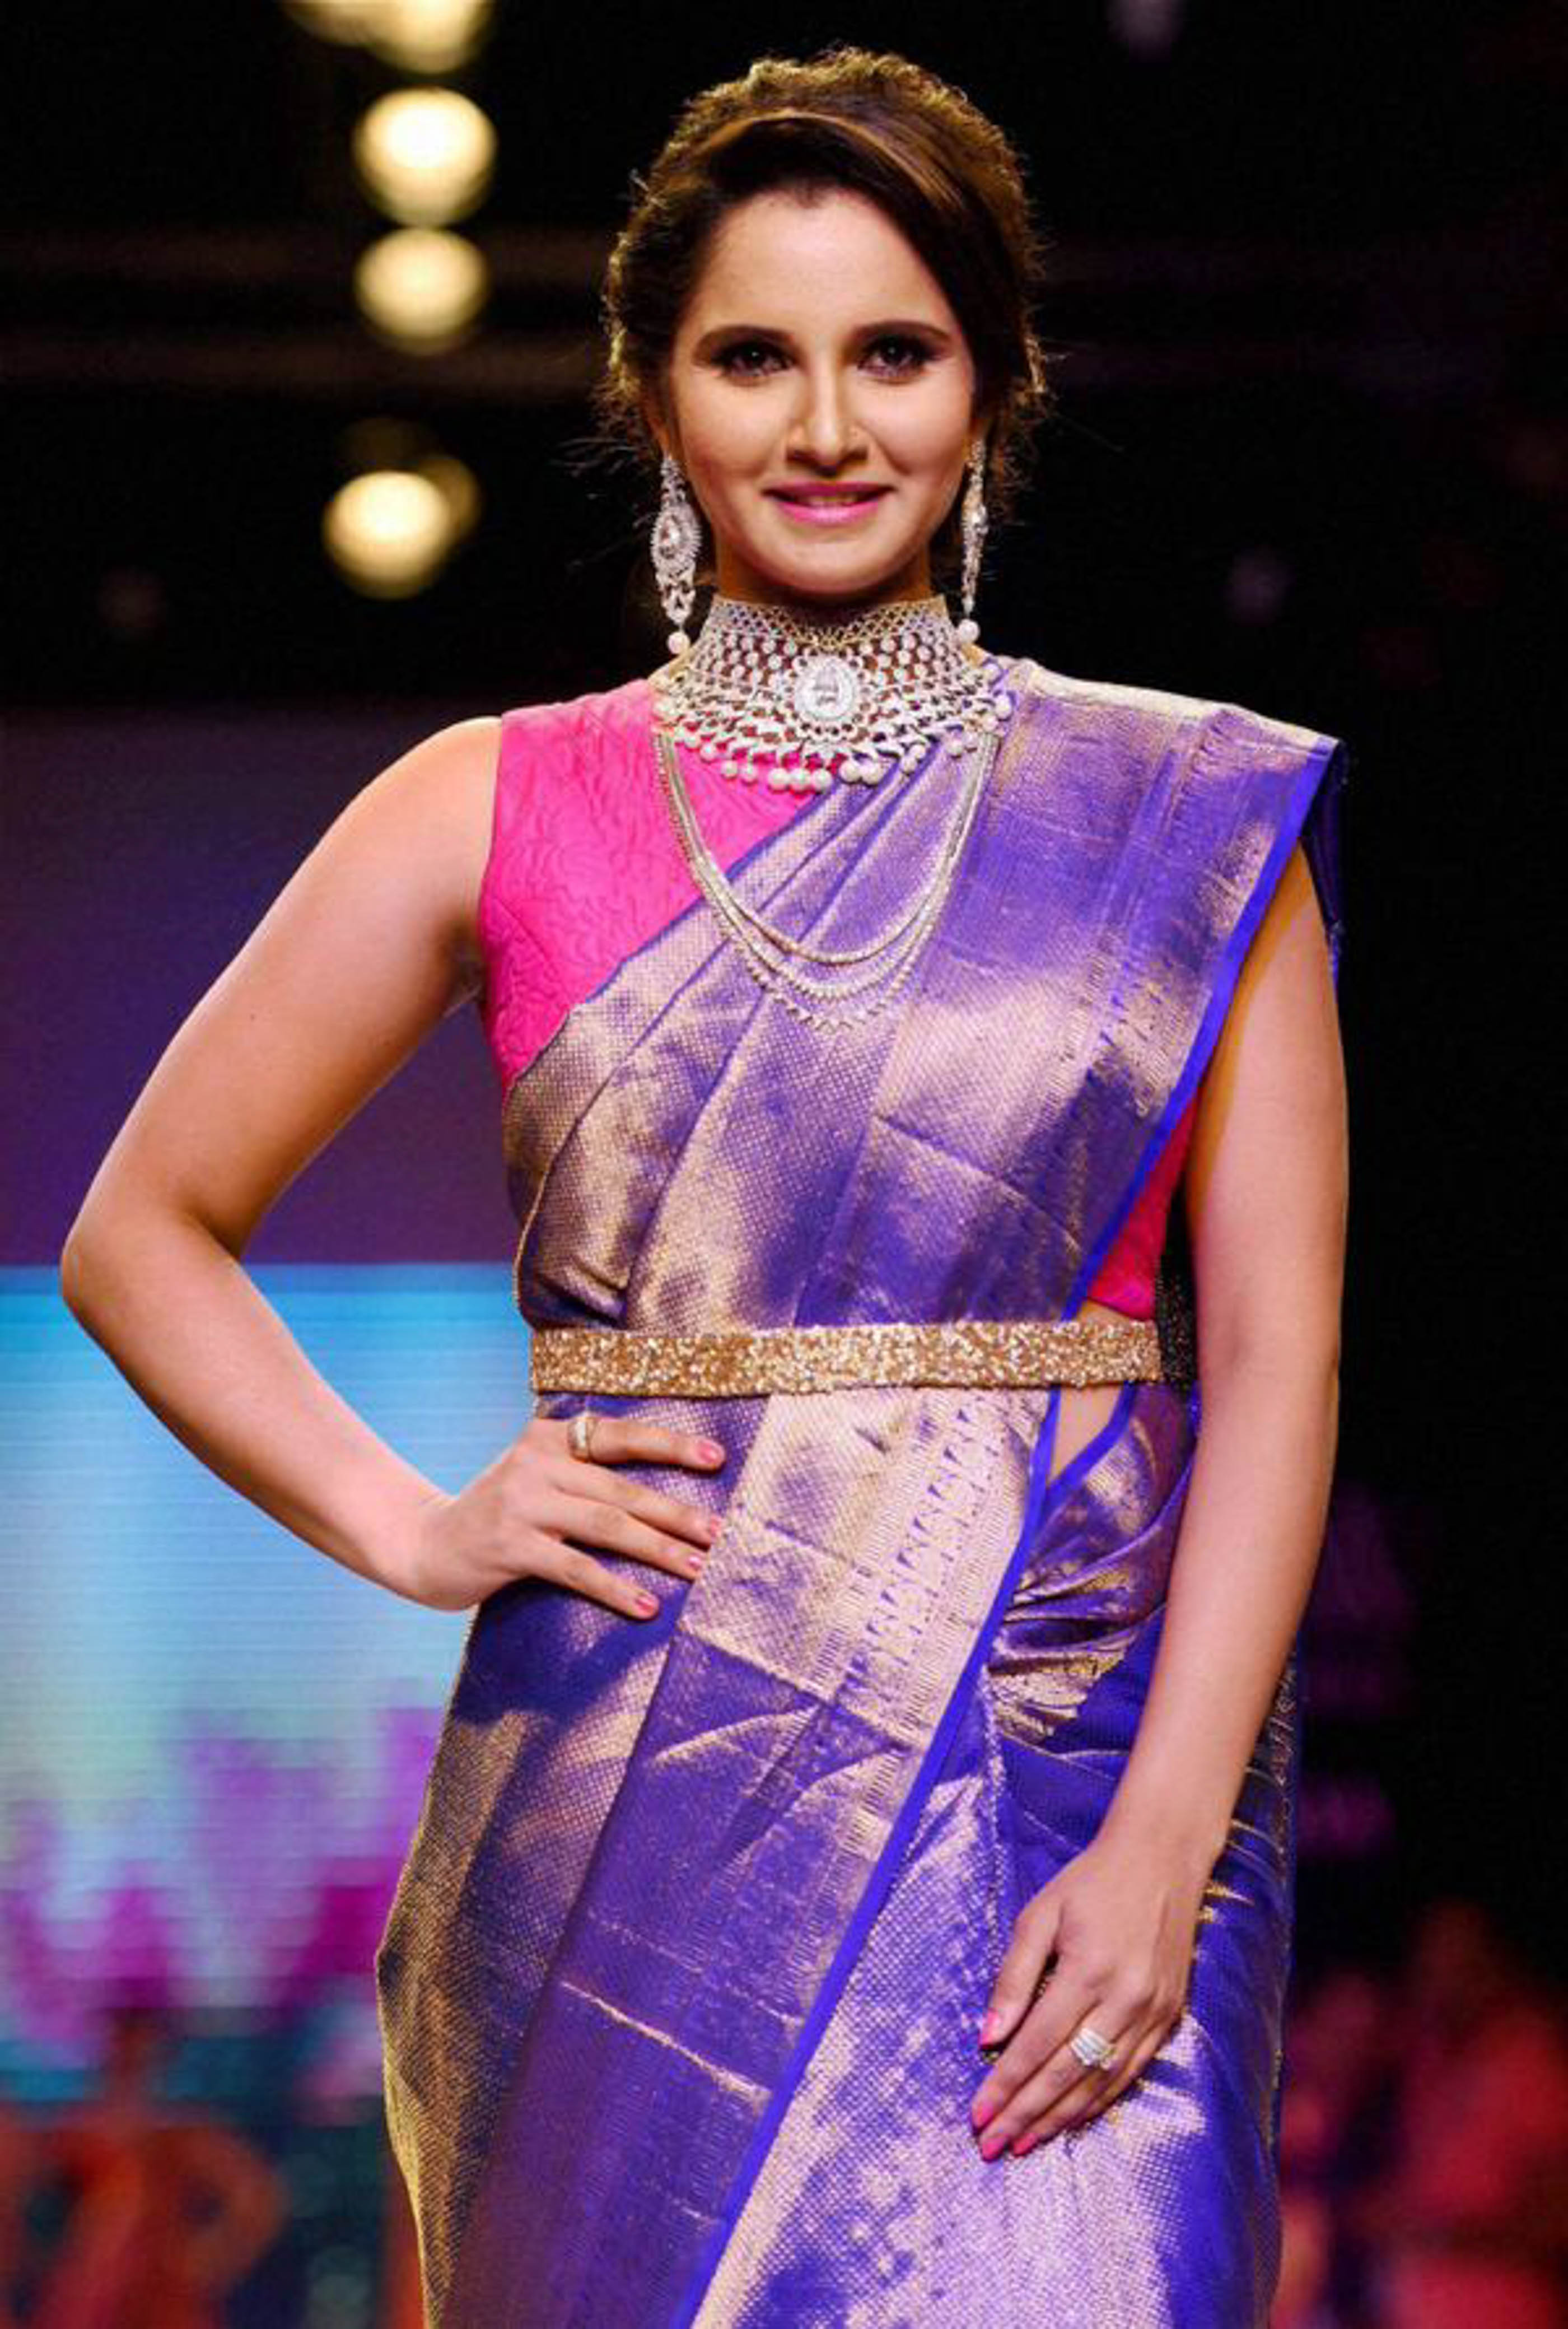 Bridal Jewellery Trends for the Modern Indian Bride - Sania Mirza - The Maharani Diaries